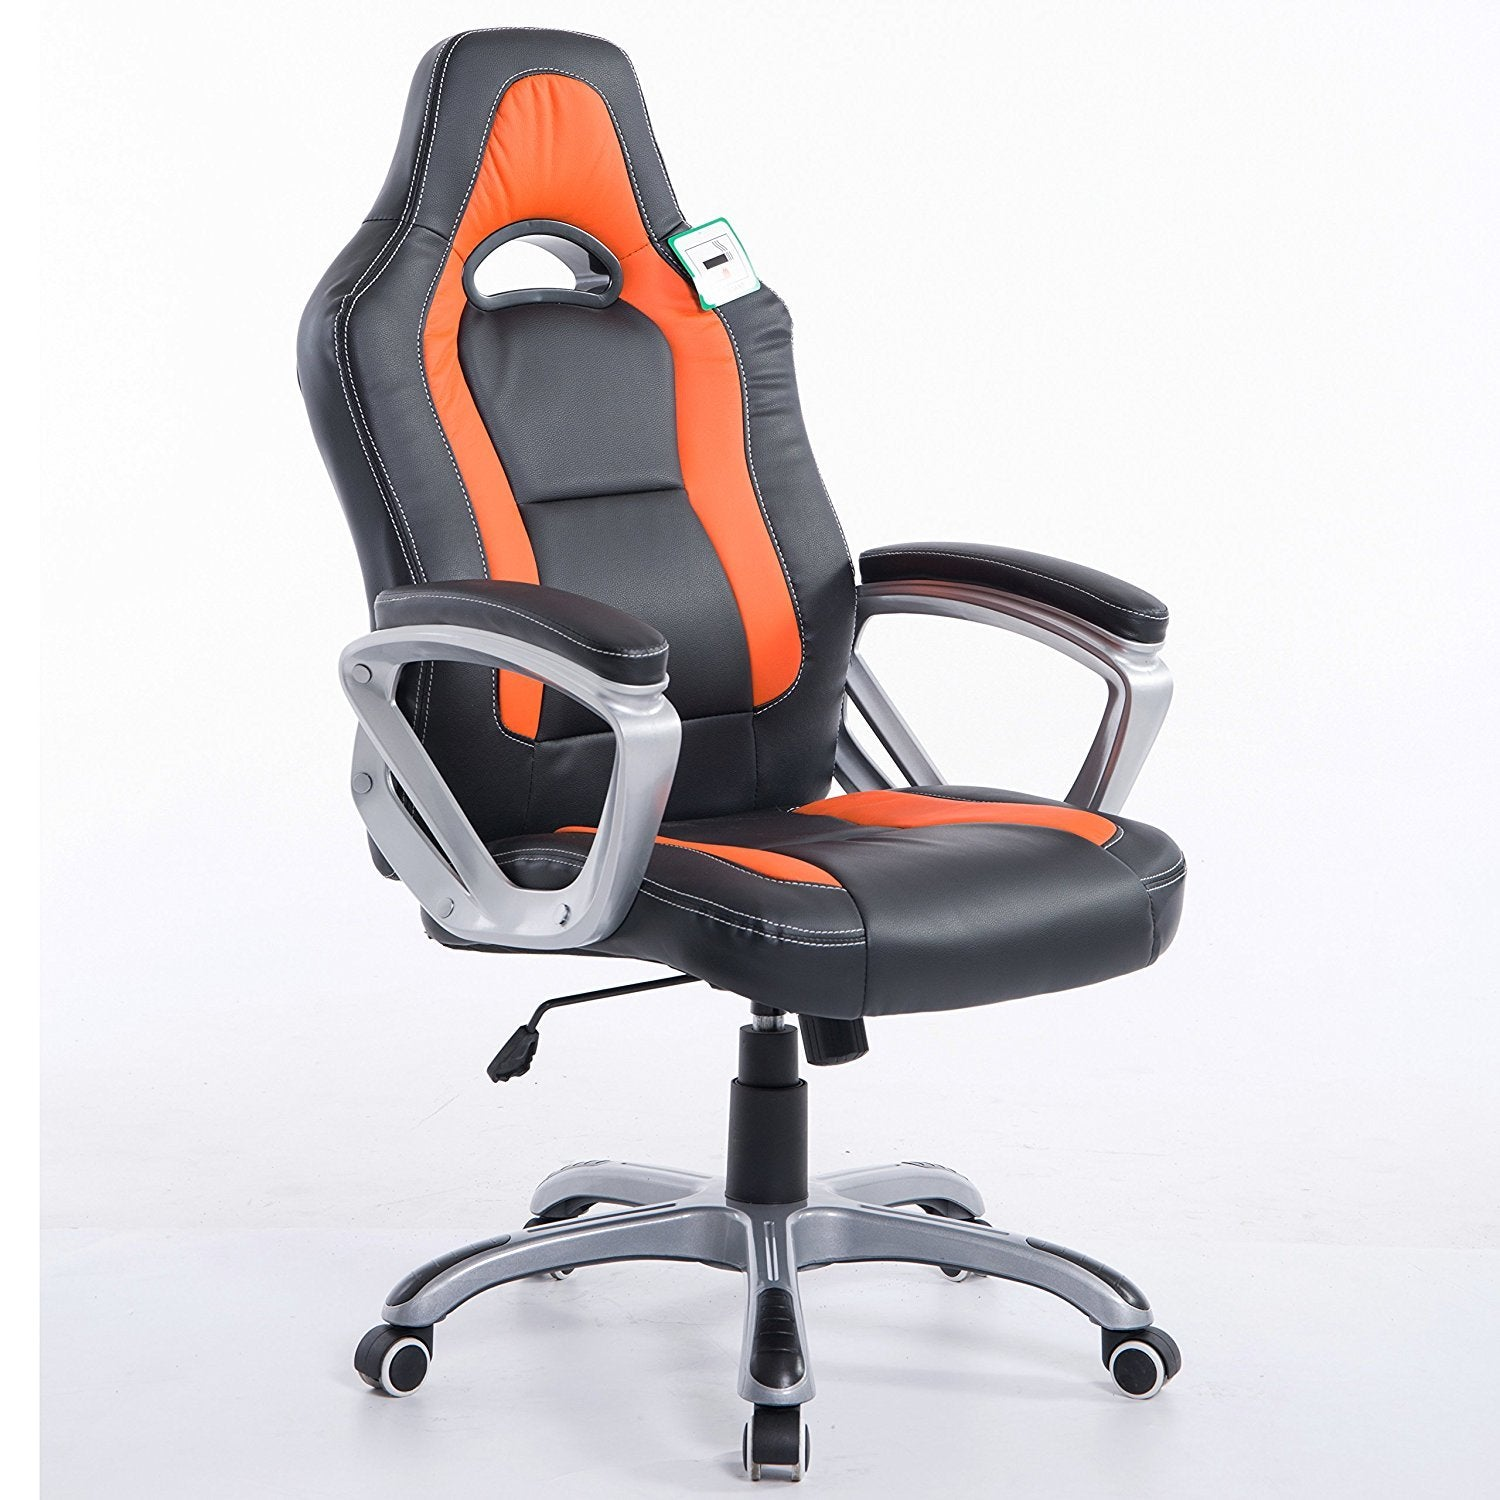 DaAls-Racing-Sport-Swivel-Office-Chair-in-Black-Orange